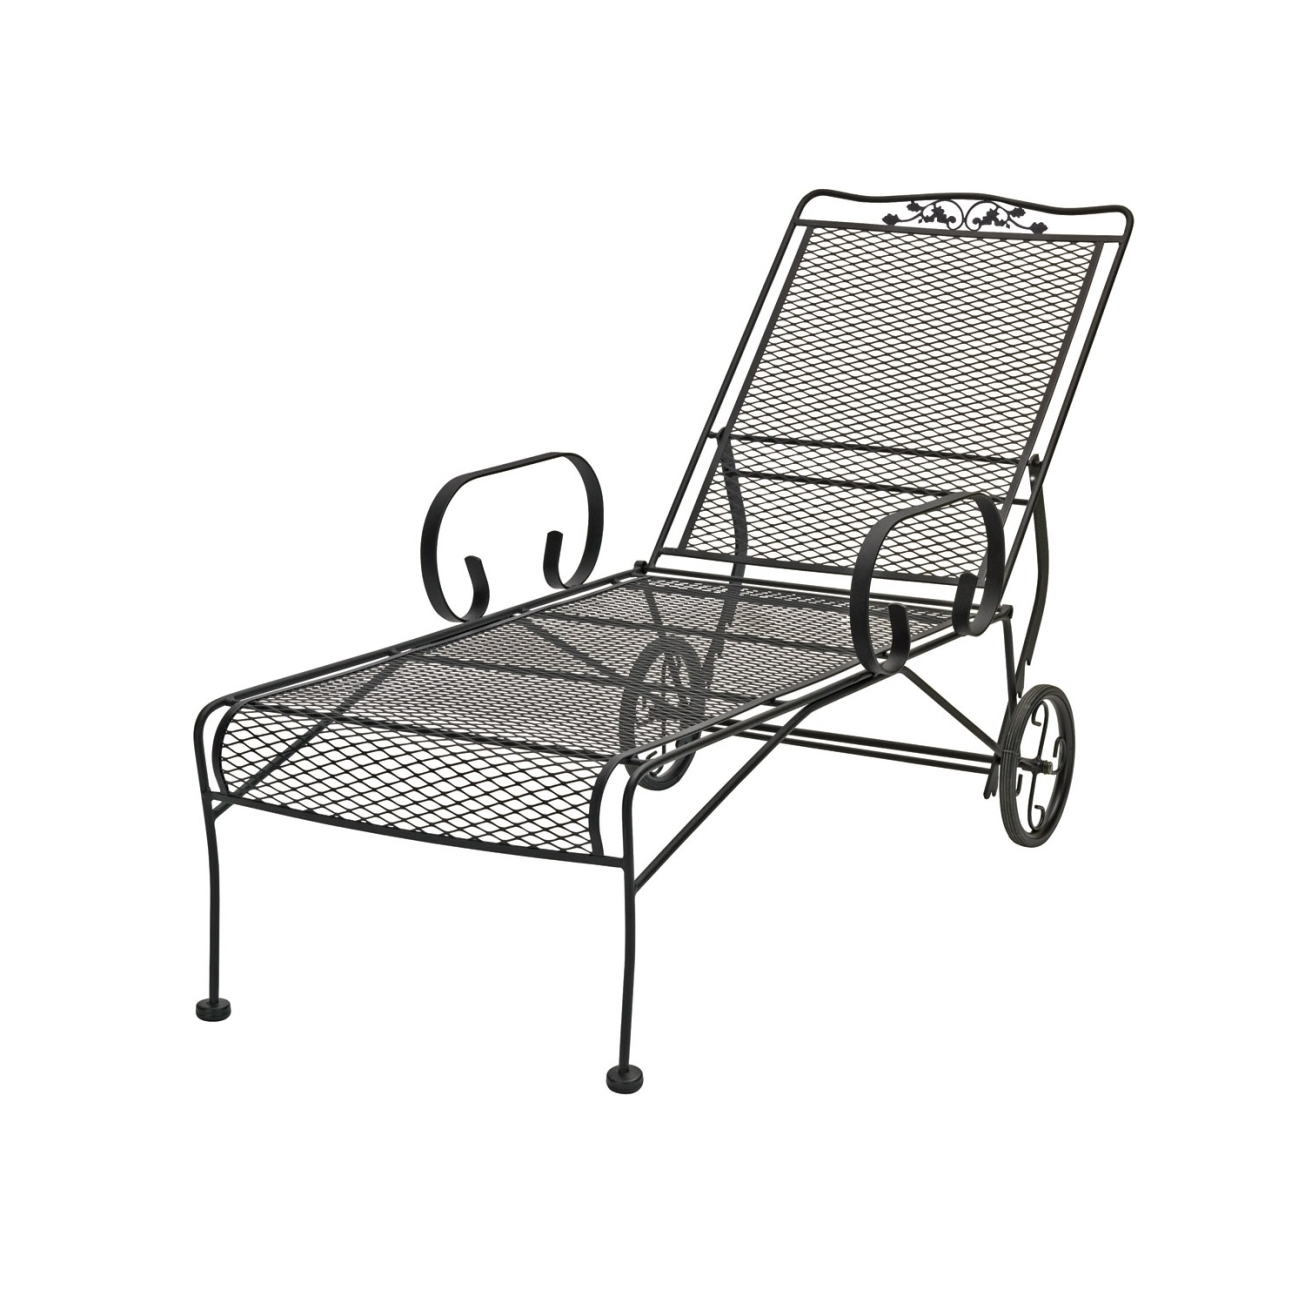 Wrought Iron Chaise Lounge Chairs Outdoor • Lounge Chairs Ideas With Most Current Wrought Iron Outdoor Chaise Lounge Chairs (View 11 of 15)